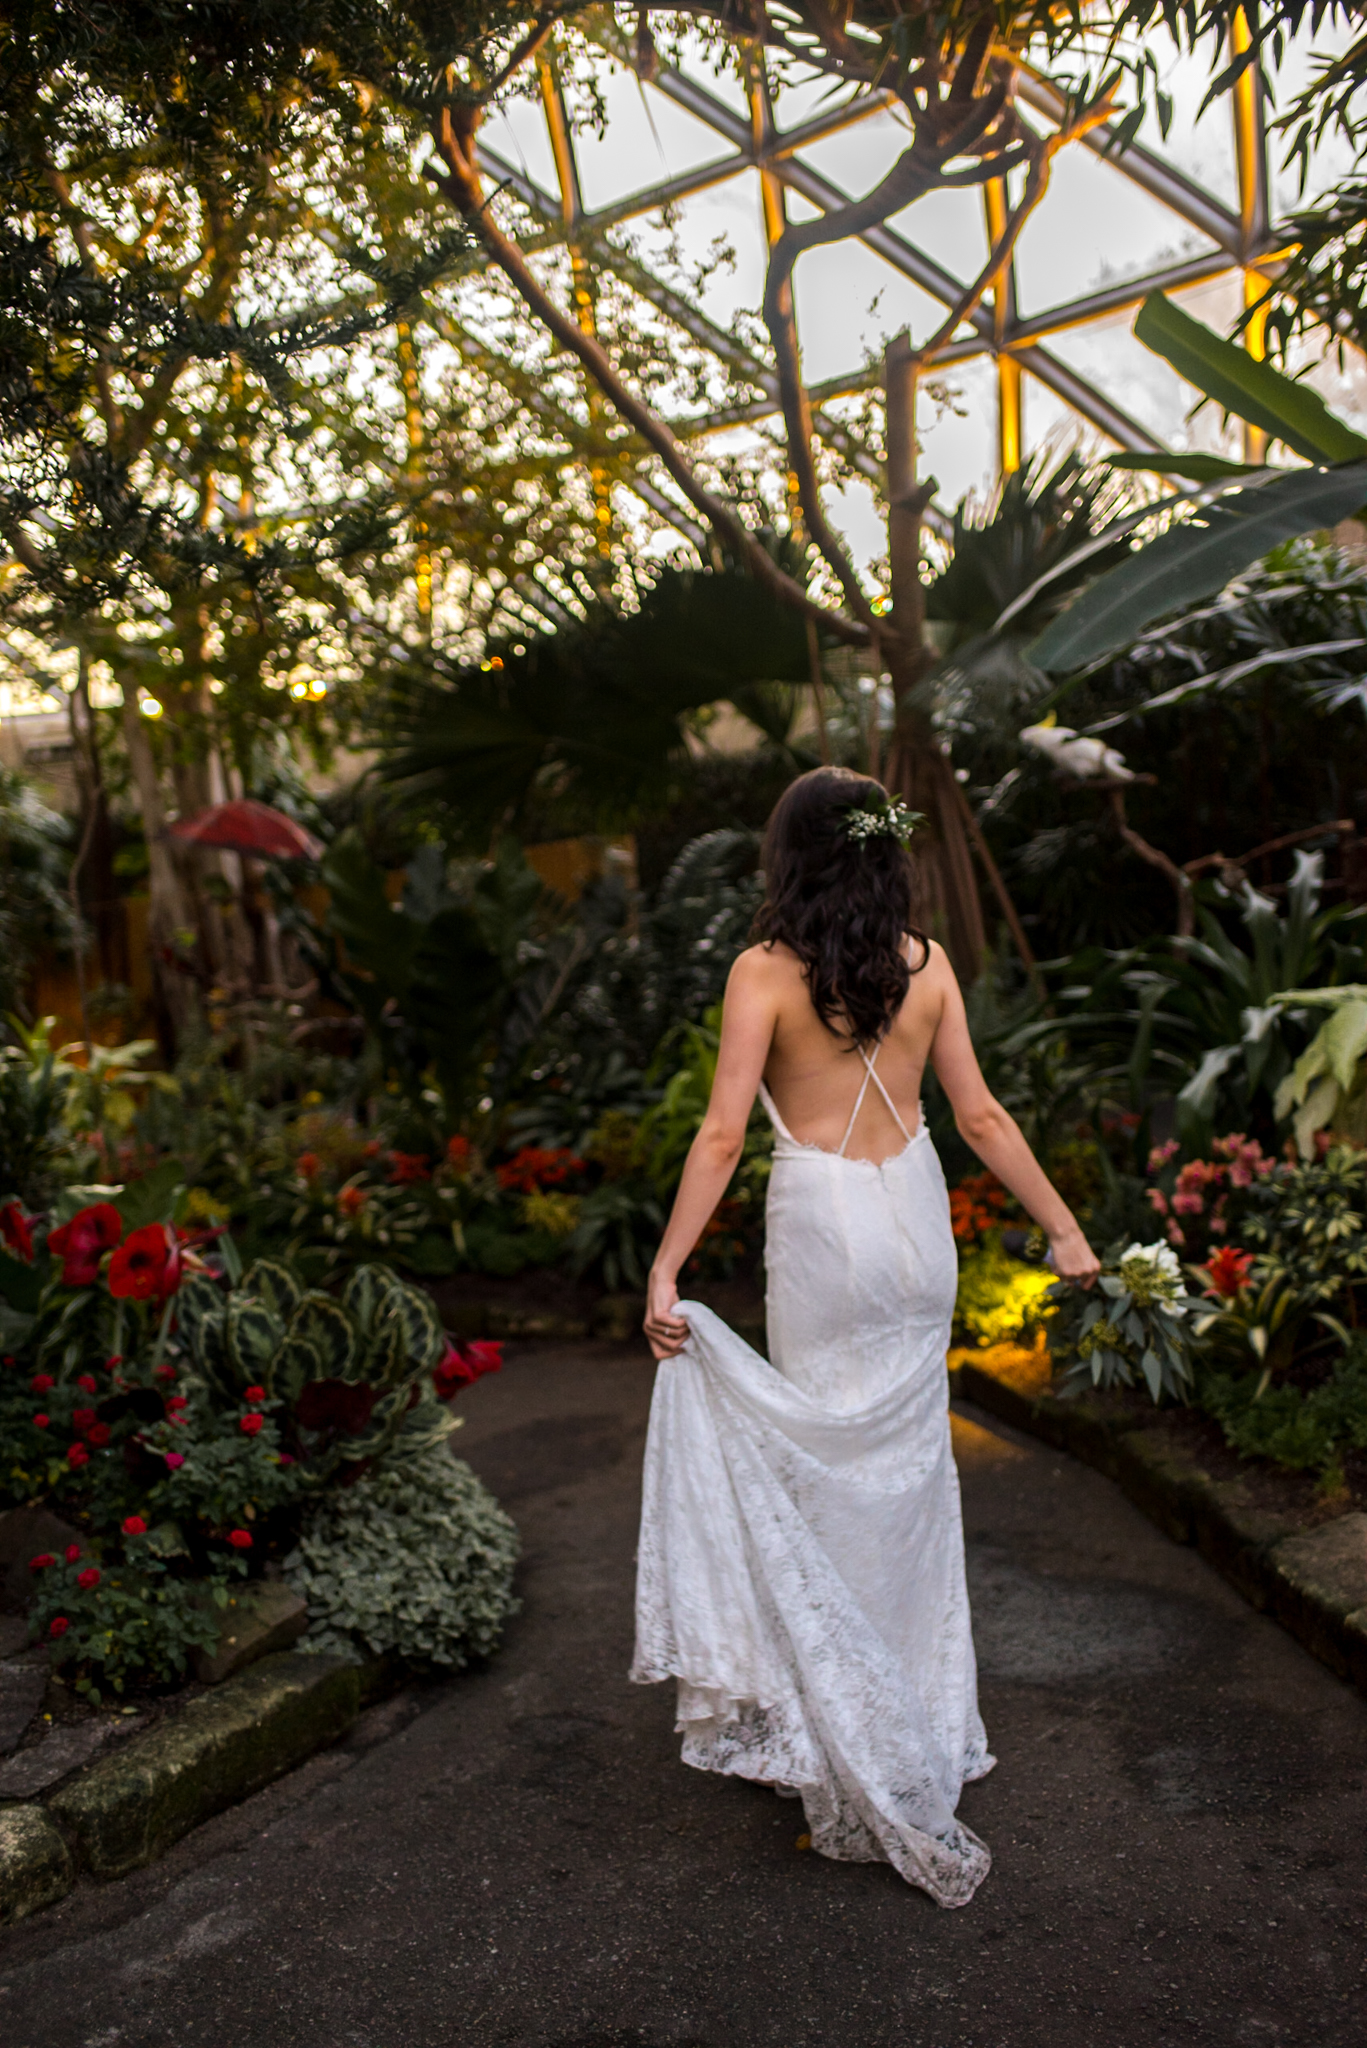 Queen Elizabeth Park Wedding Photographer-76.jpg